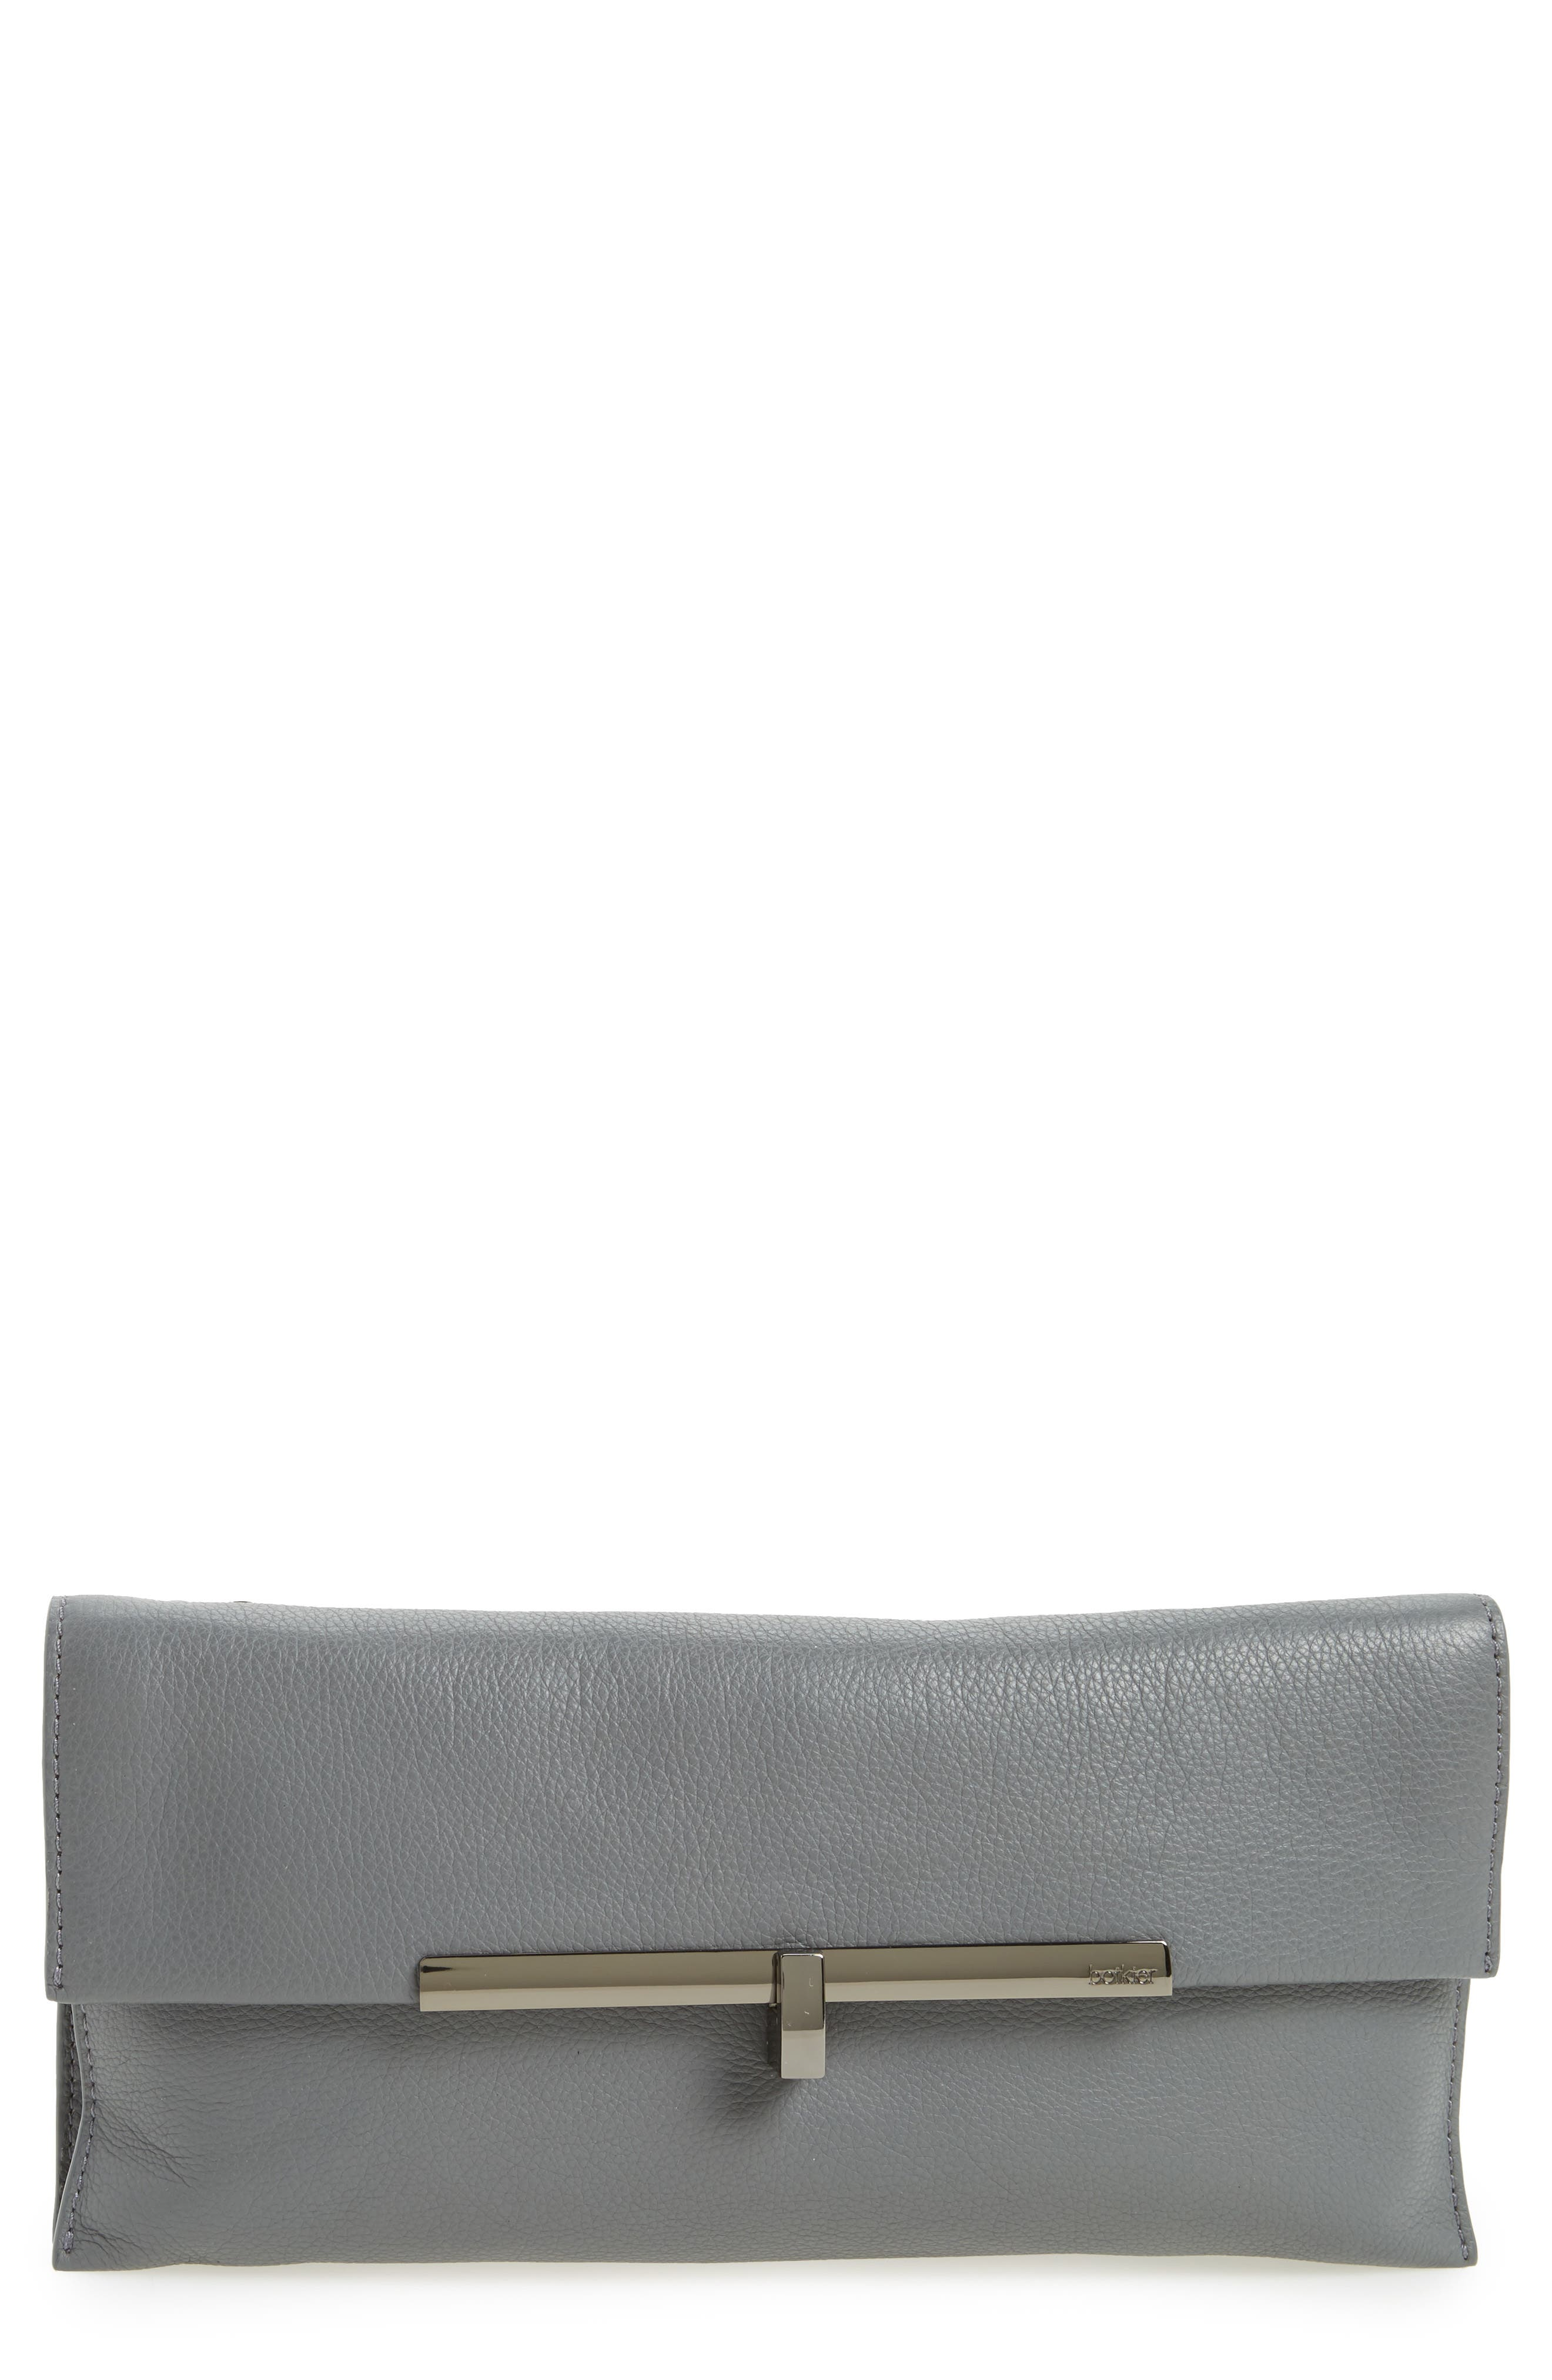 Main Image - Botkier Bleeker Leather Clutch